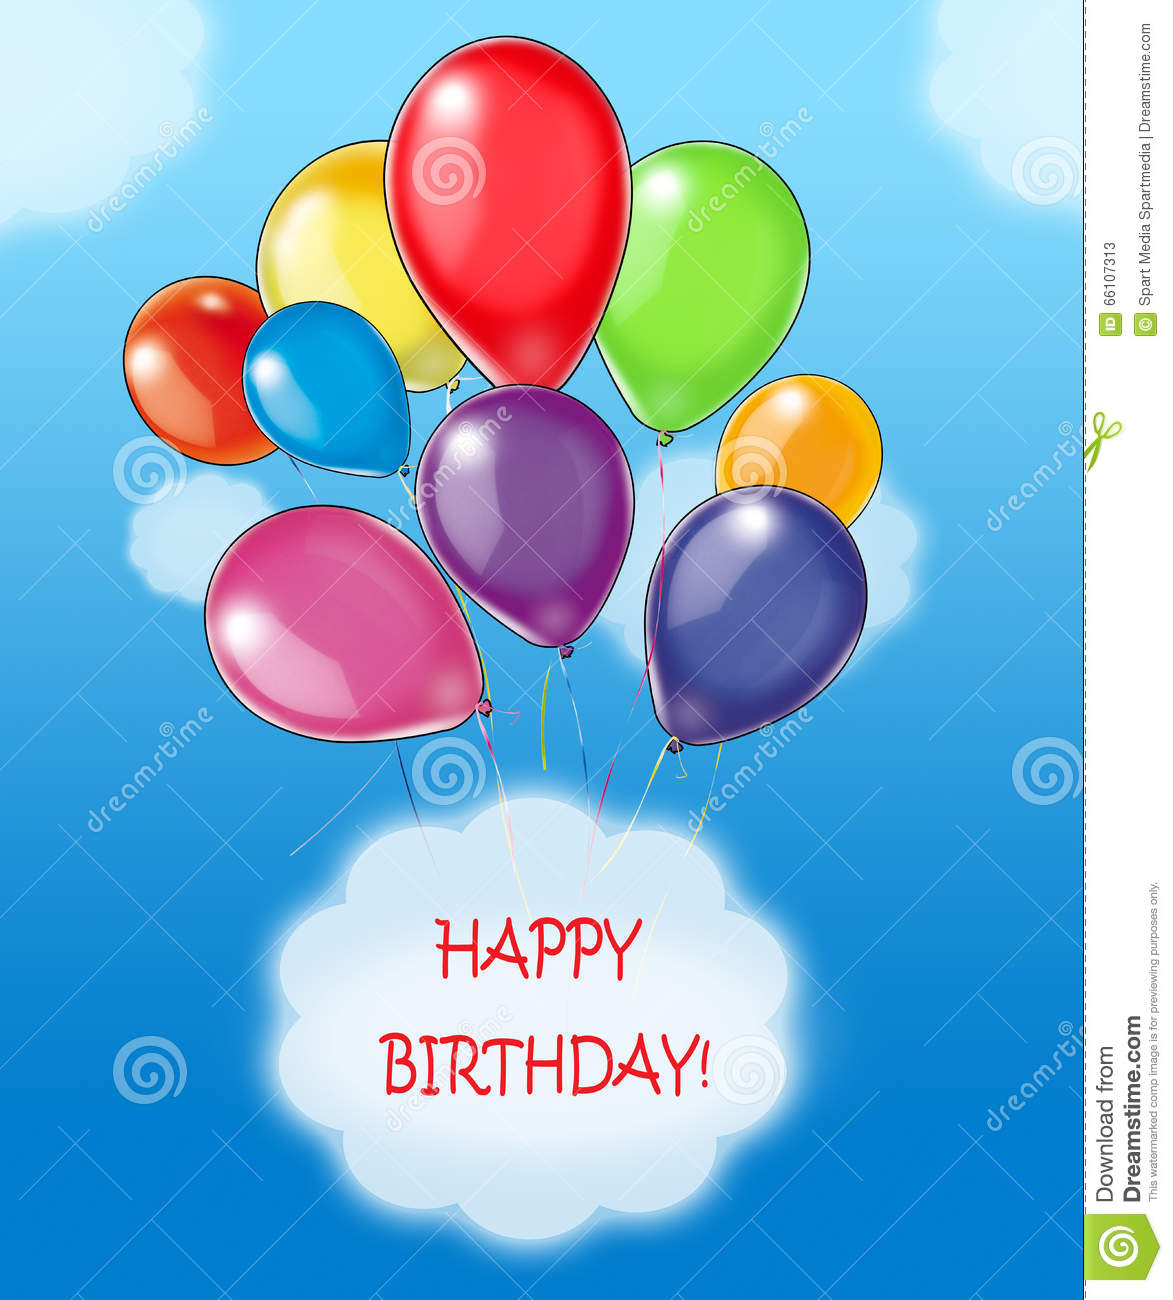 happy birthday message for child ; happy-birthday-wishes-greeting-card-colorful-balloons-blue-sky-message-white-cloud-children-s-festive-66107313